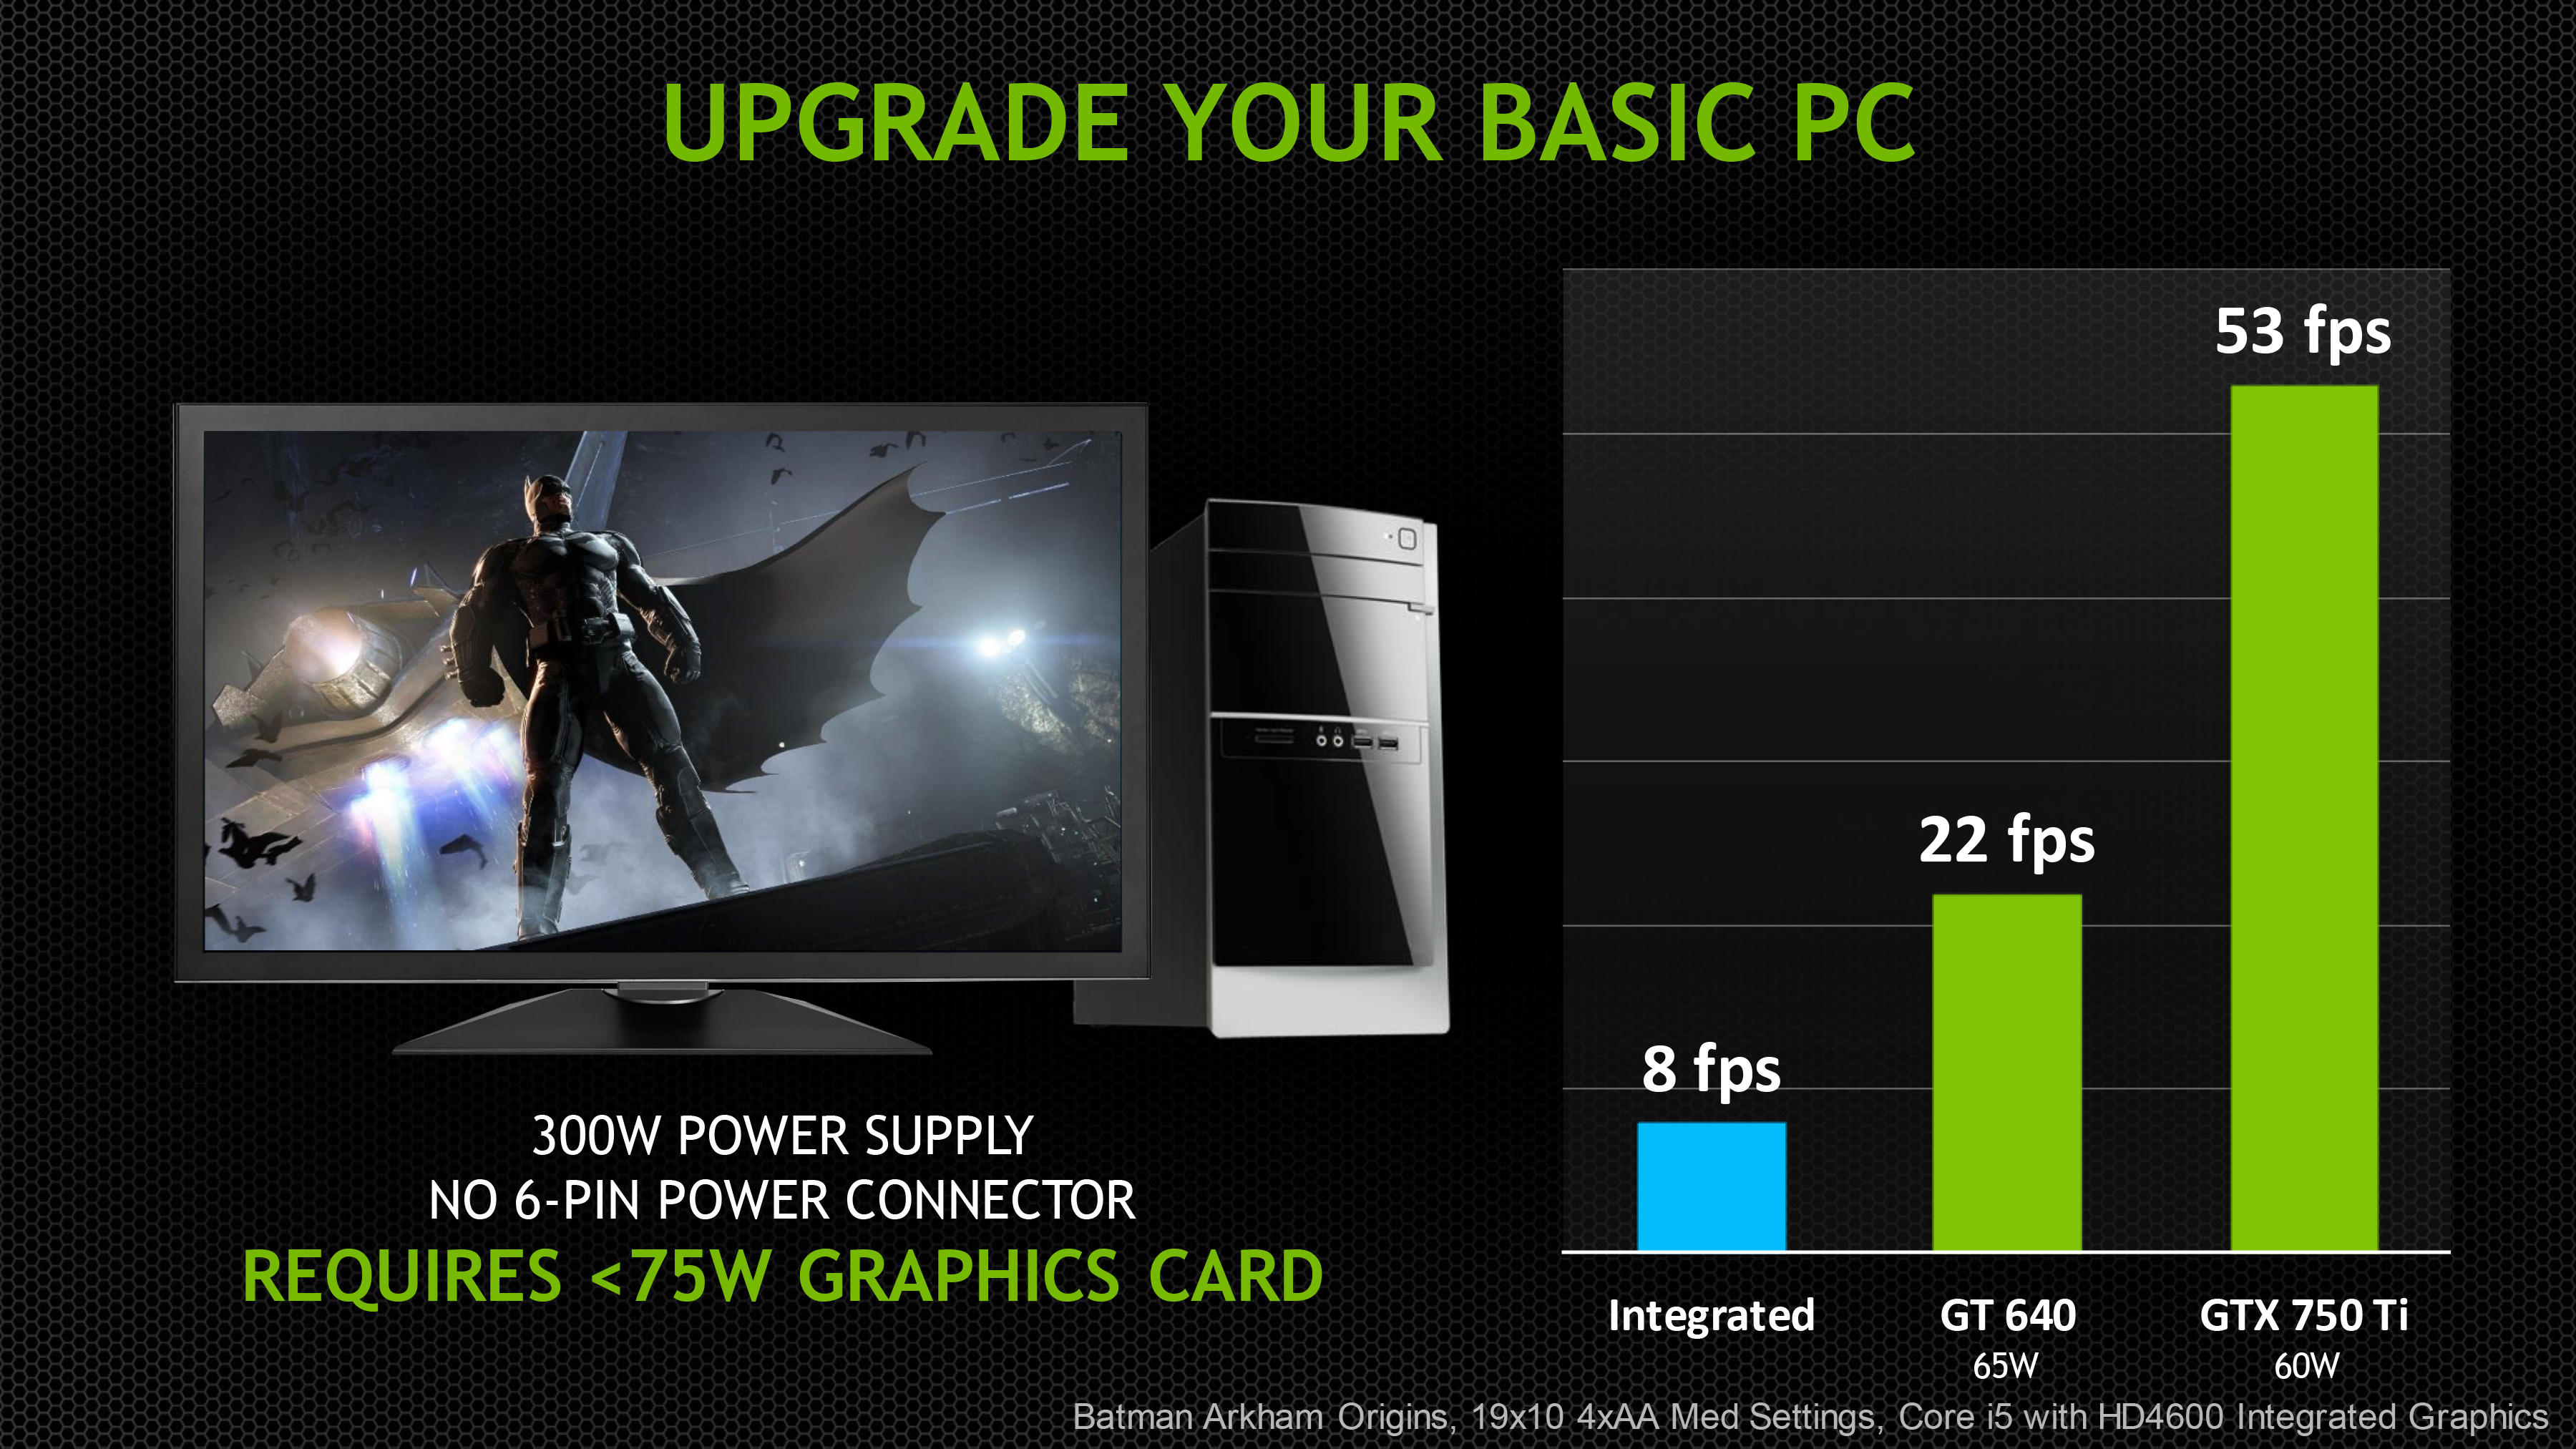 GeForce GTX 750 Ti & GTX 750 Specifications & Positioning